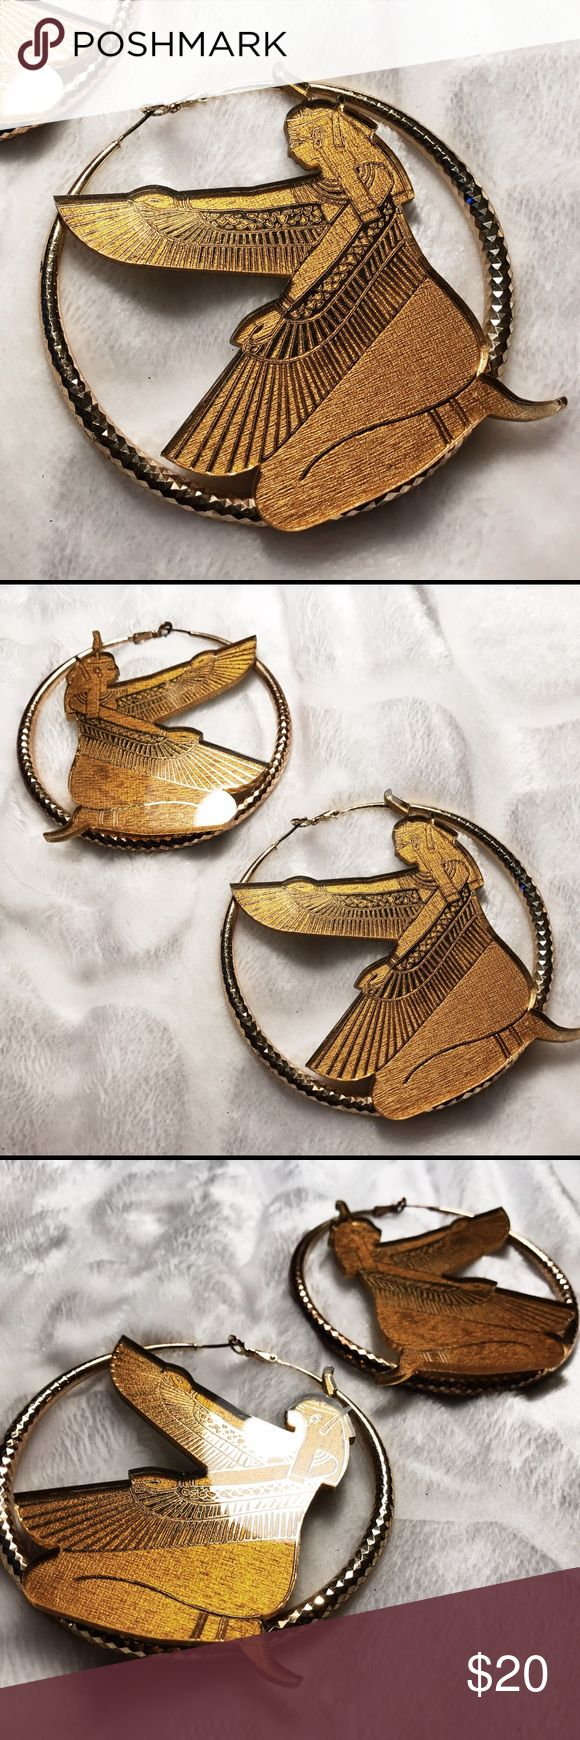 Melody Ehsani gold Pharaoh Egypt hoop earrings Melody Ehsani gold Pharaoh Egypt hoop earrings. Worn a handful of times, in used condition, some slight tarnishing. Beautiful earrings purchased at her boutique in LA! 🌙✨🏜OFFERS ALWAYS WELCOME! 🌙✨ melody ehsani Jewelry Earrings